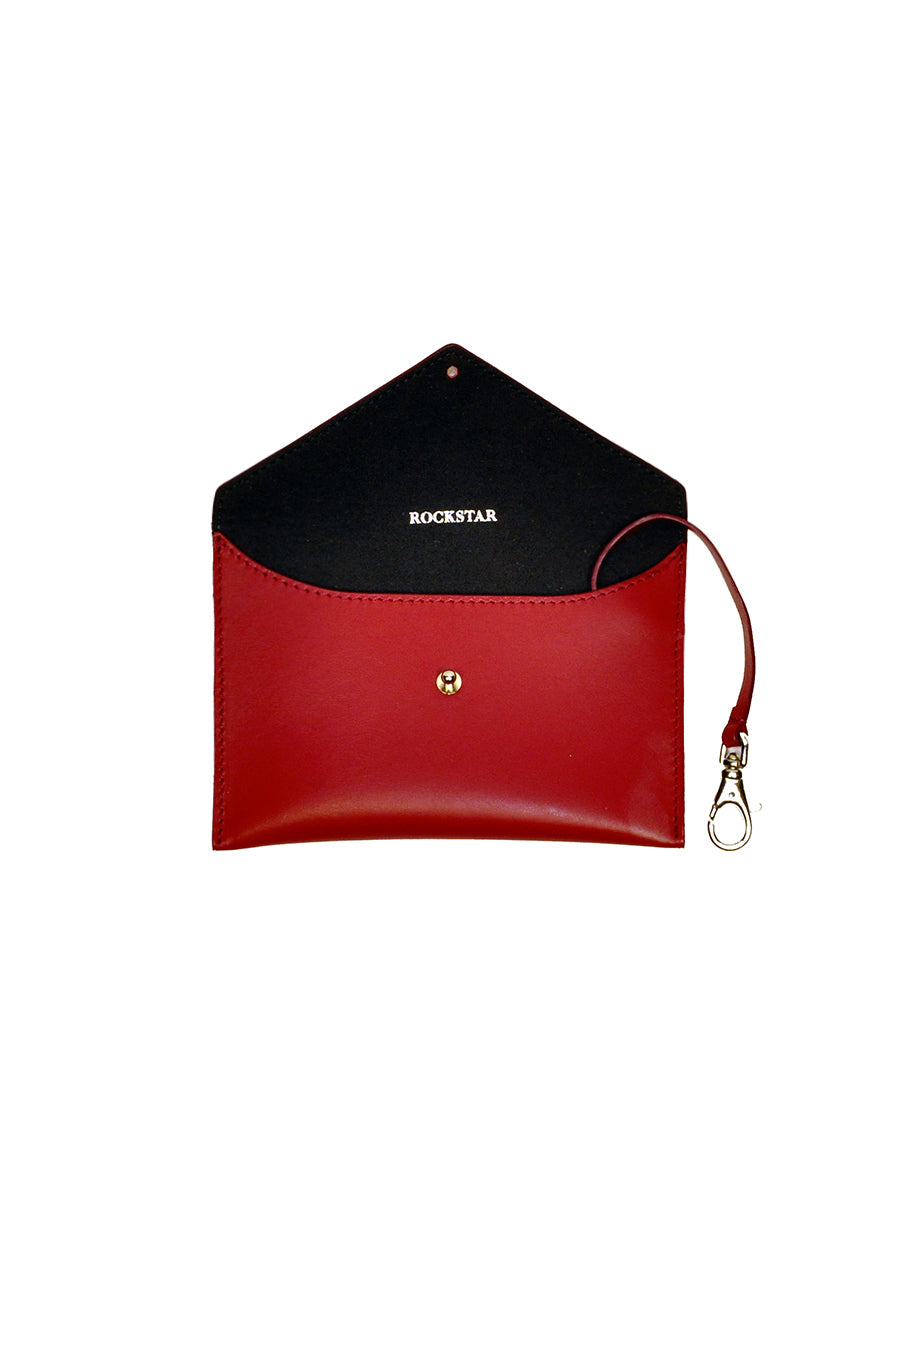 Rockstar leather pouch envelope in red genuine leather